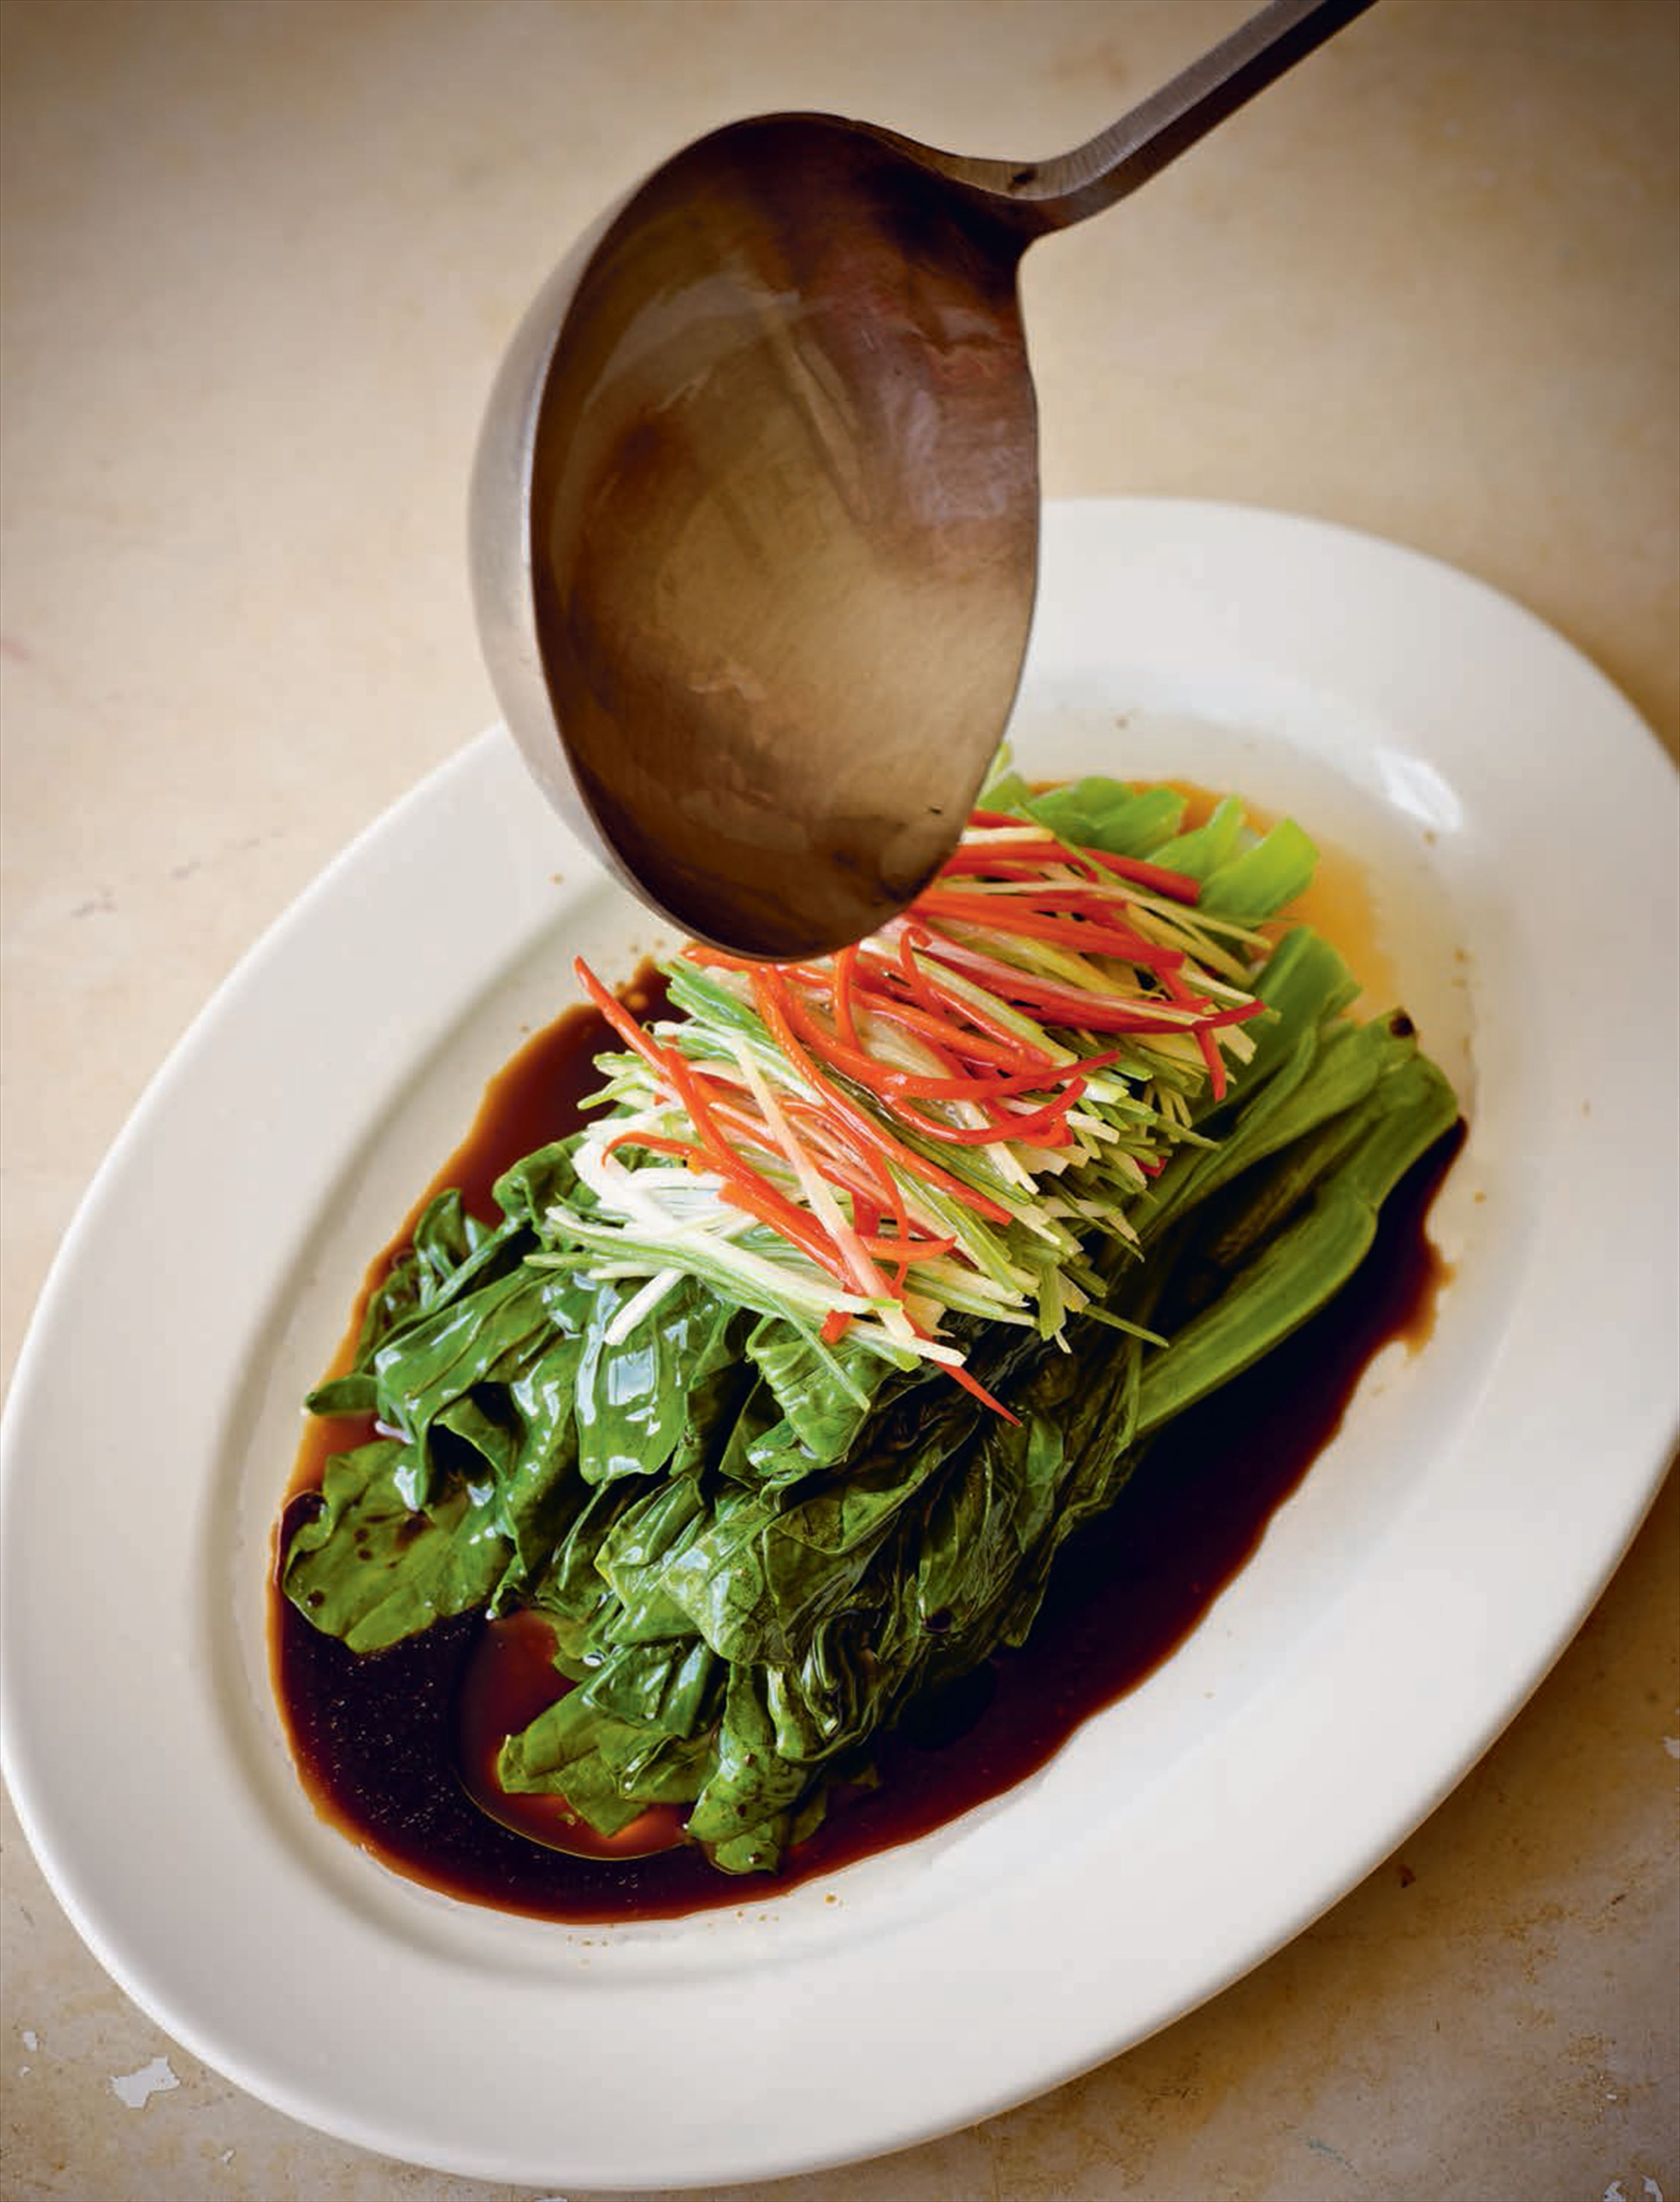 Blanched choy sum with sizzling oil